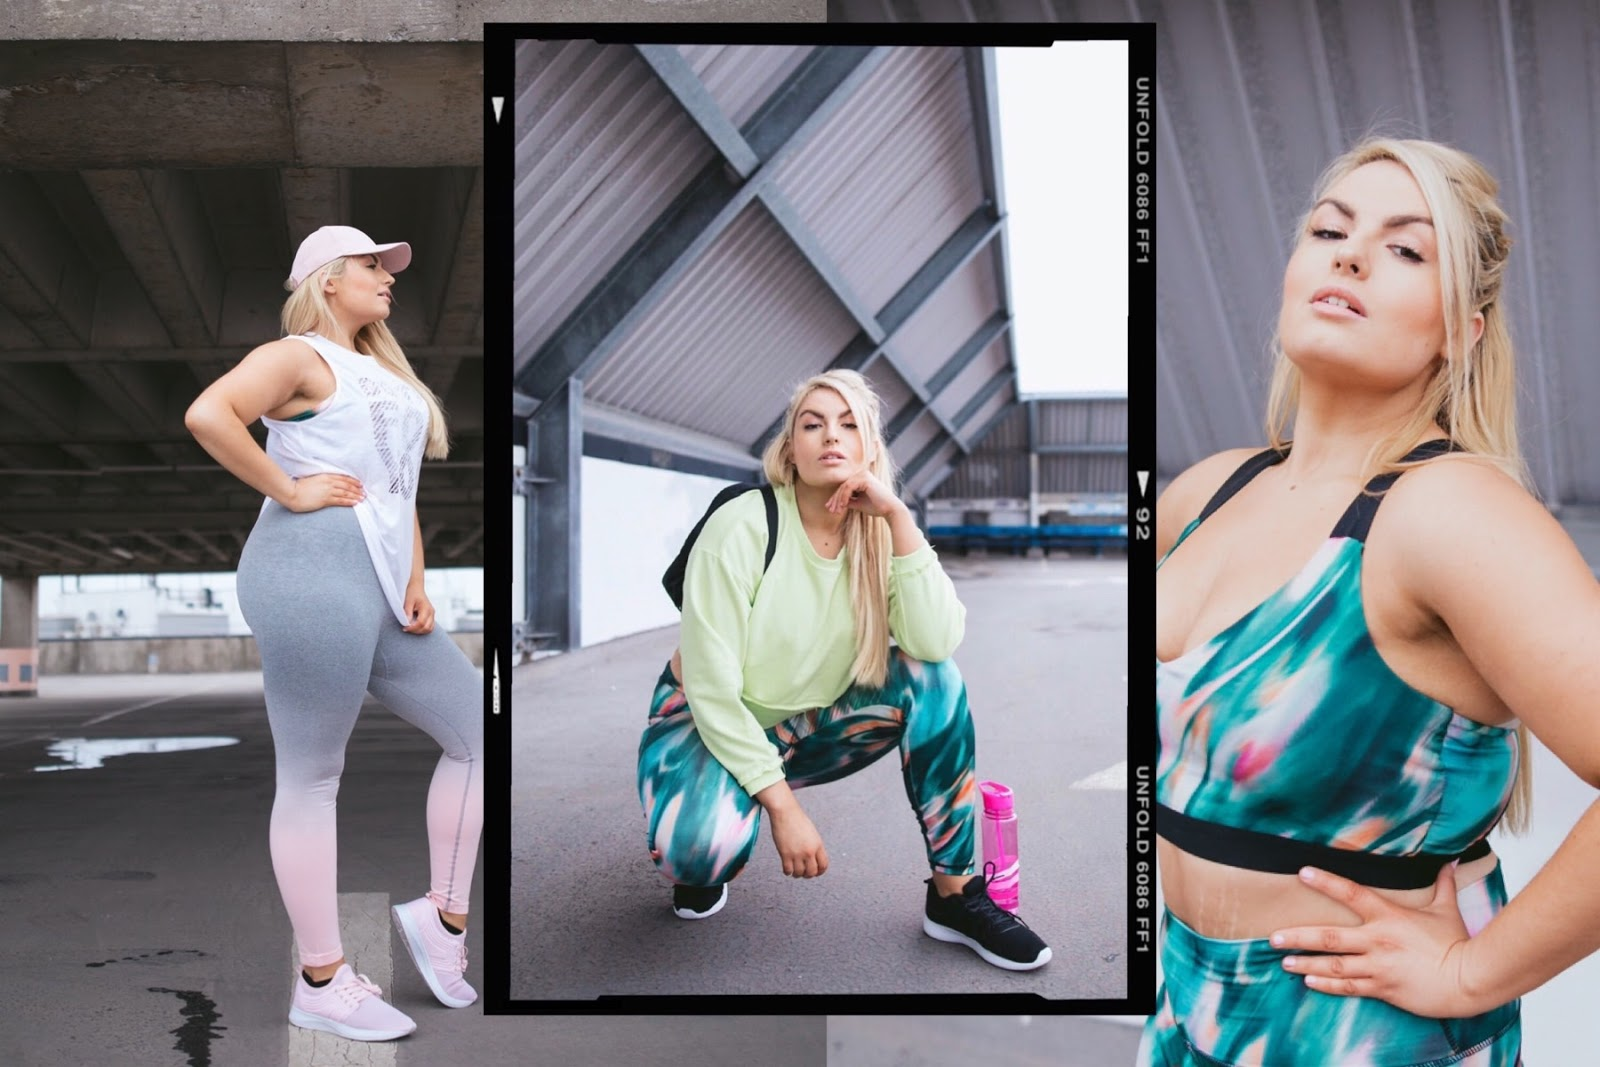 28a495eef2ad93 The Primark Alice Liveing Sportswear Collection 2019 | Style Me Curvy